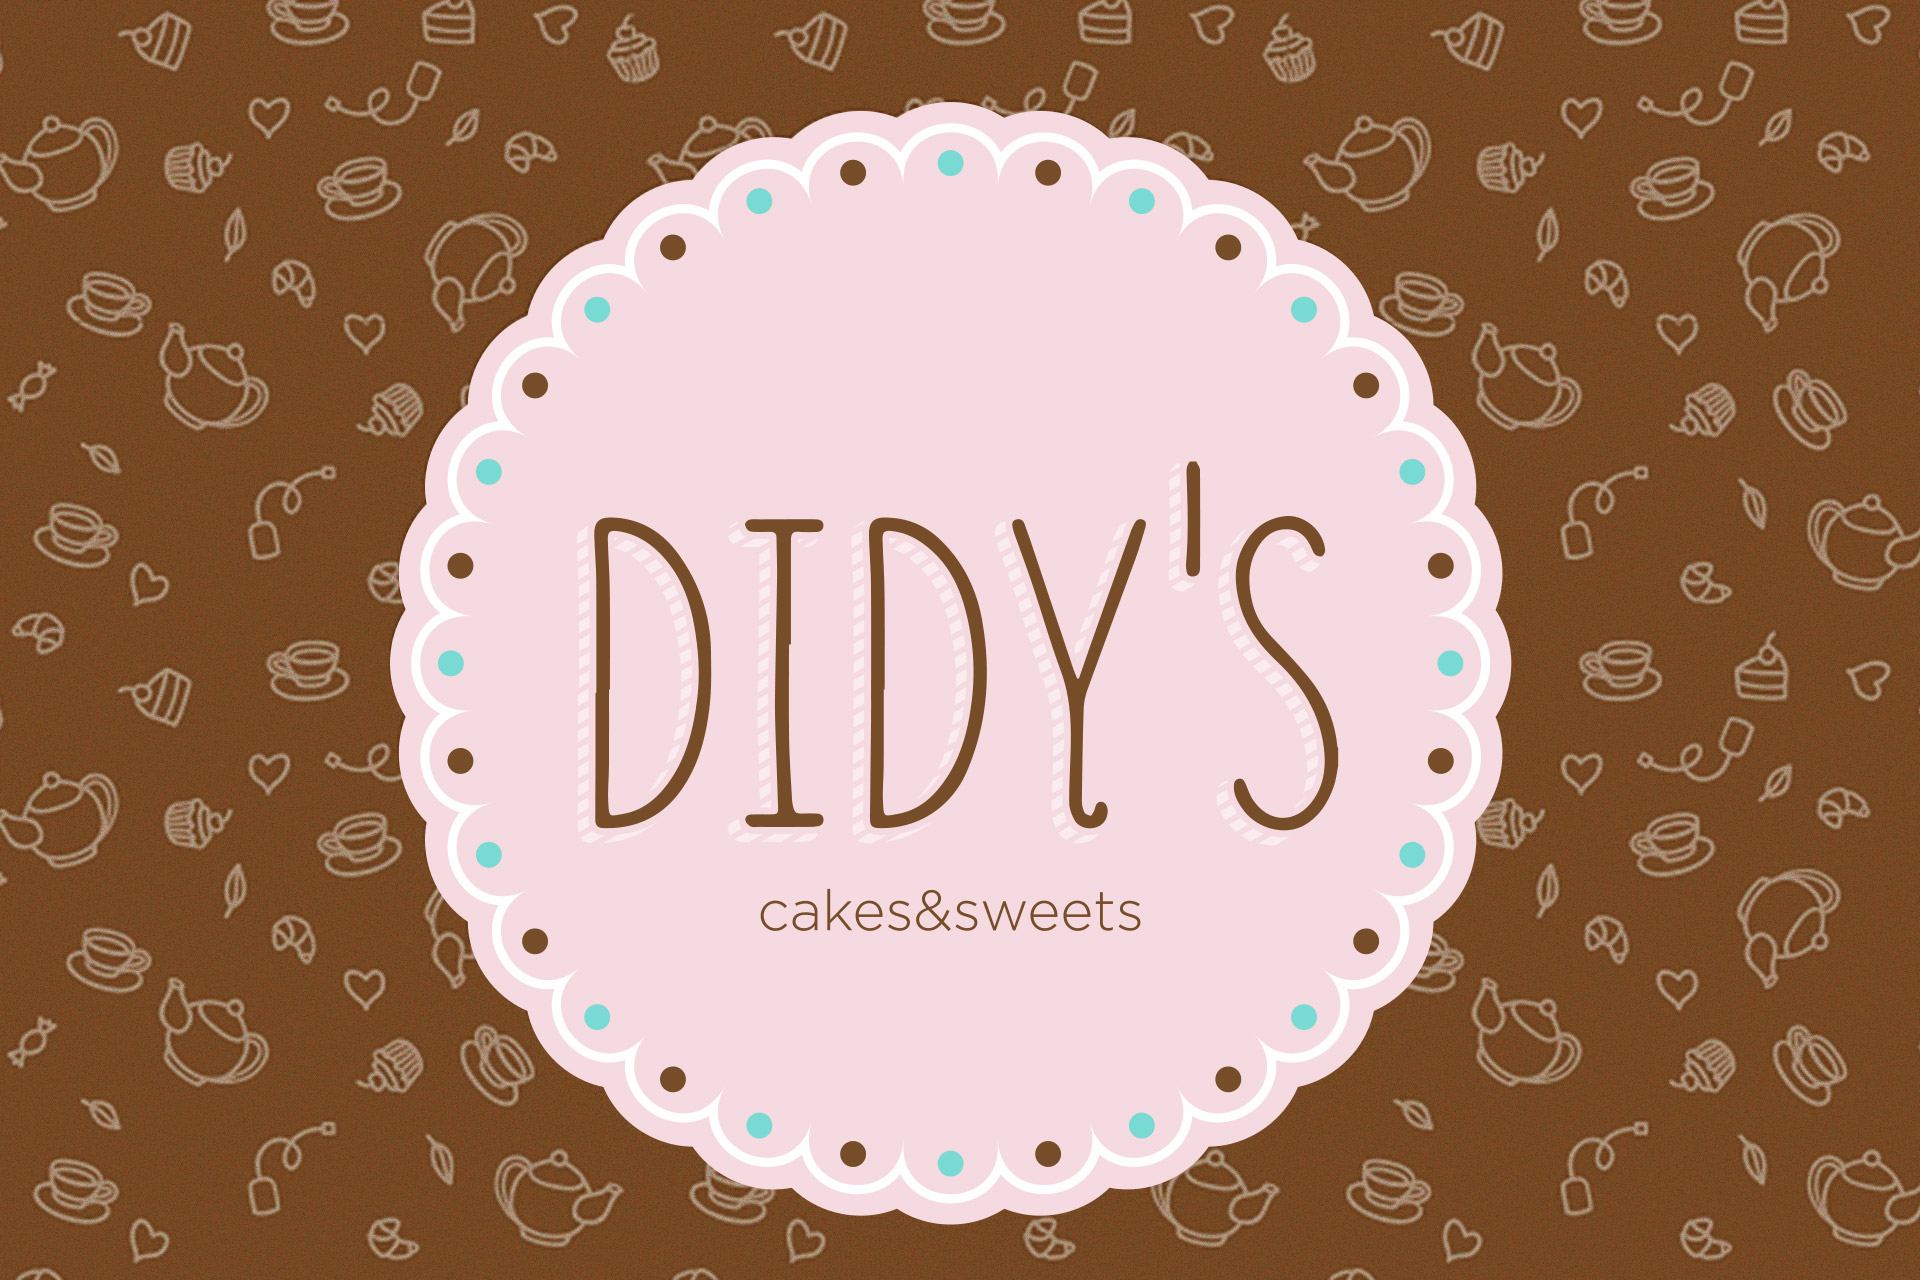 didy's pastry shop catalog design